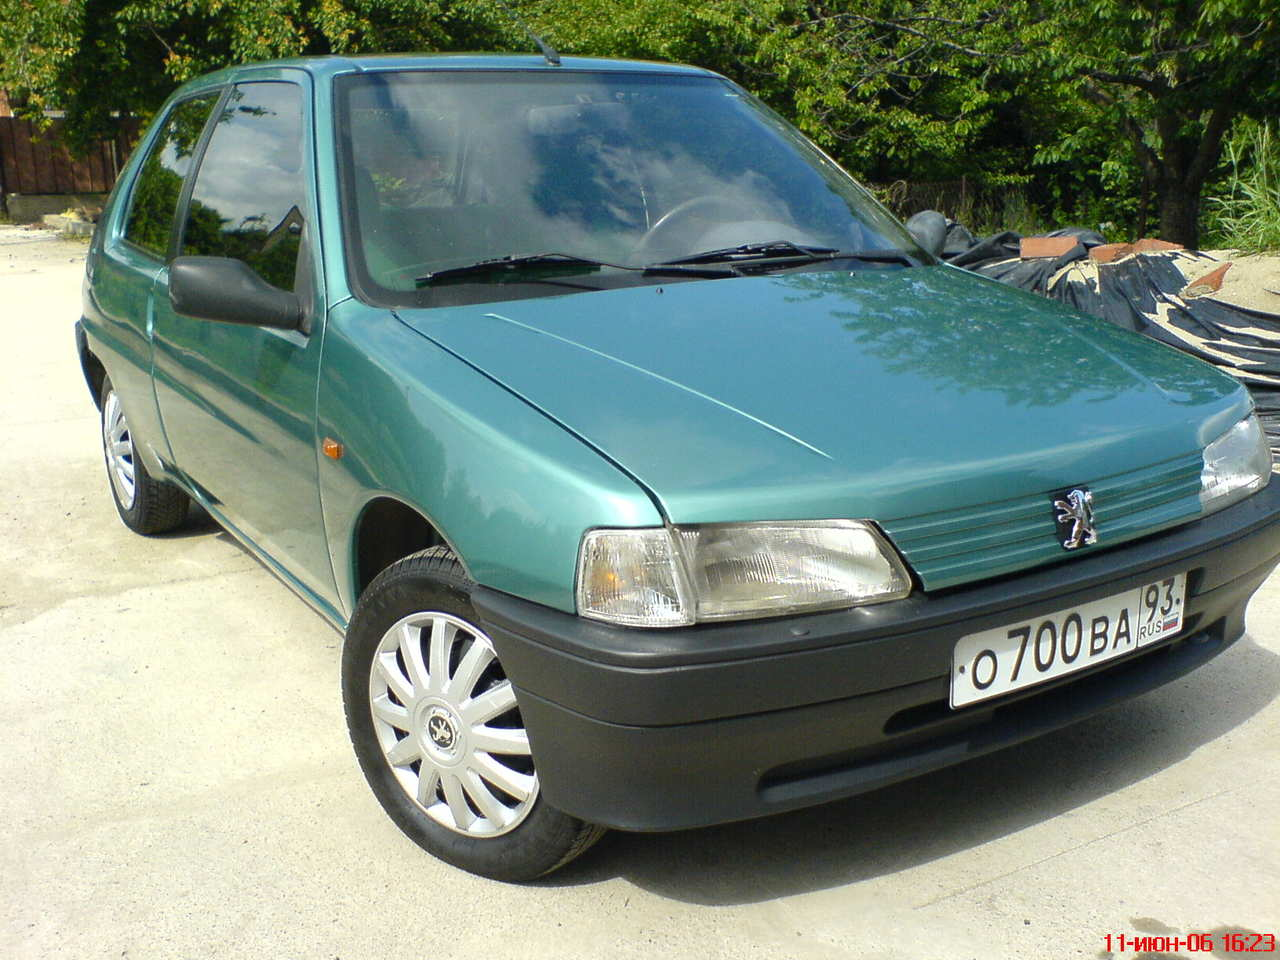 used 1993 peugeot 106 photos 1100cc gasoline ff manual for sale. Black Bedroom Furniture Sets. Home Design Ideas